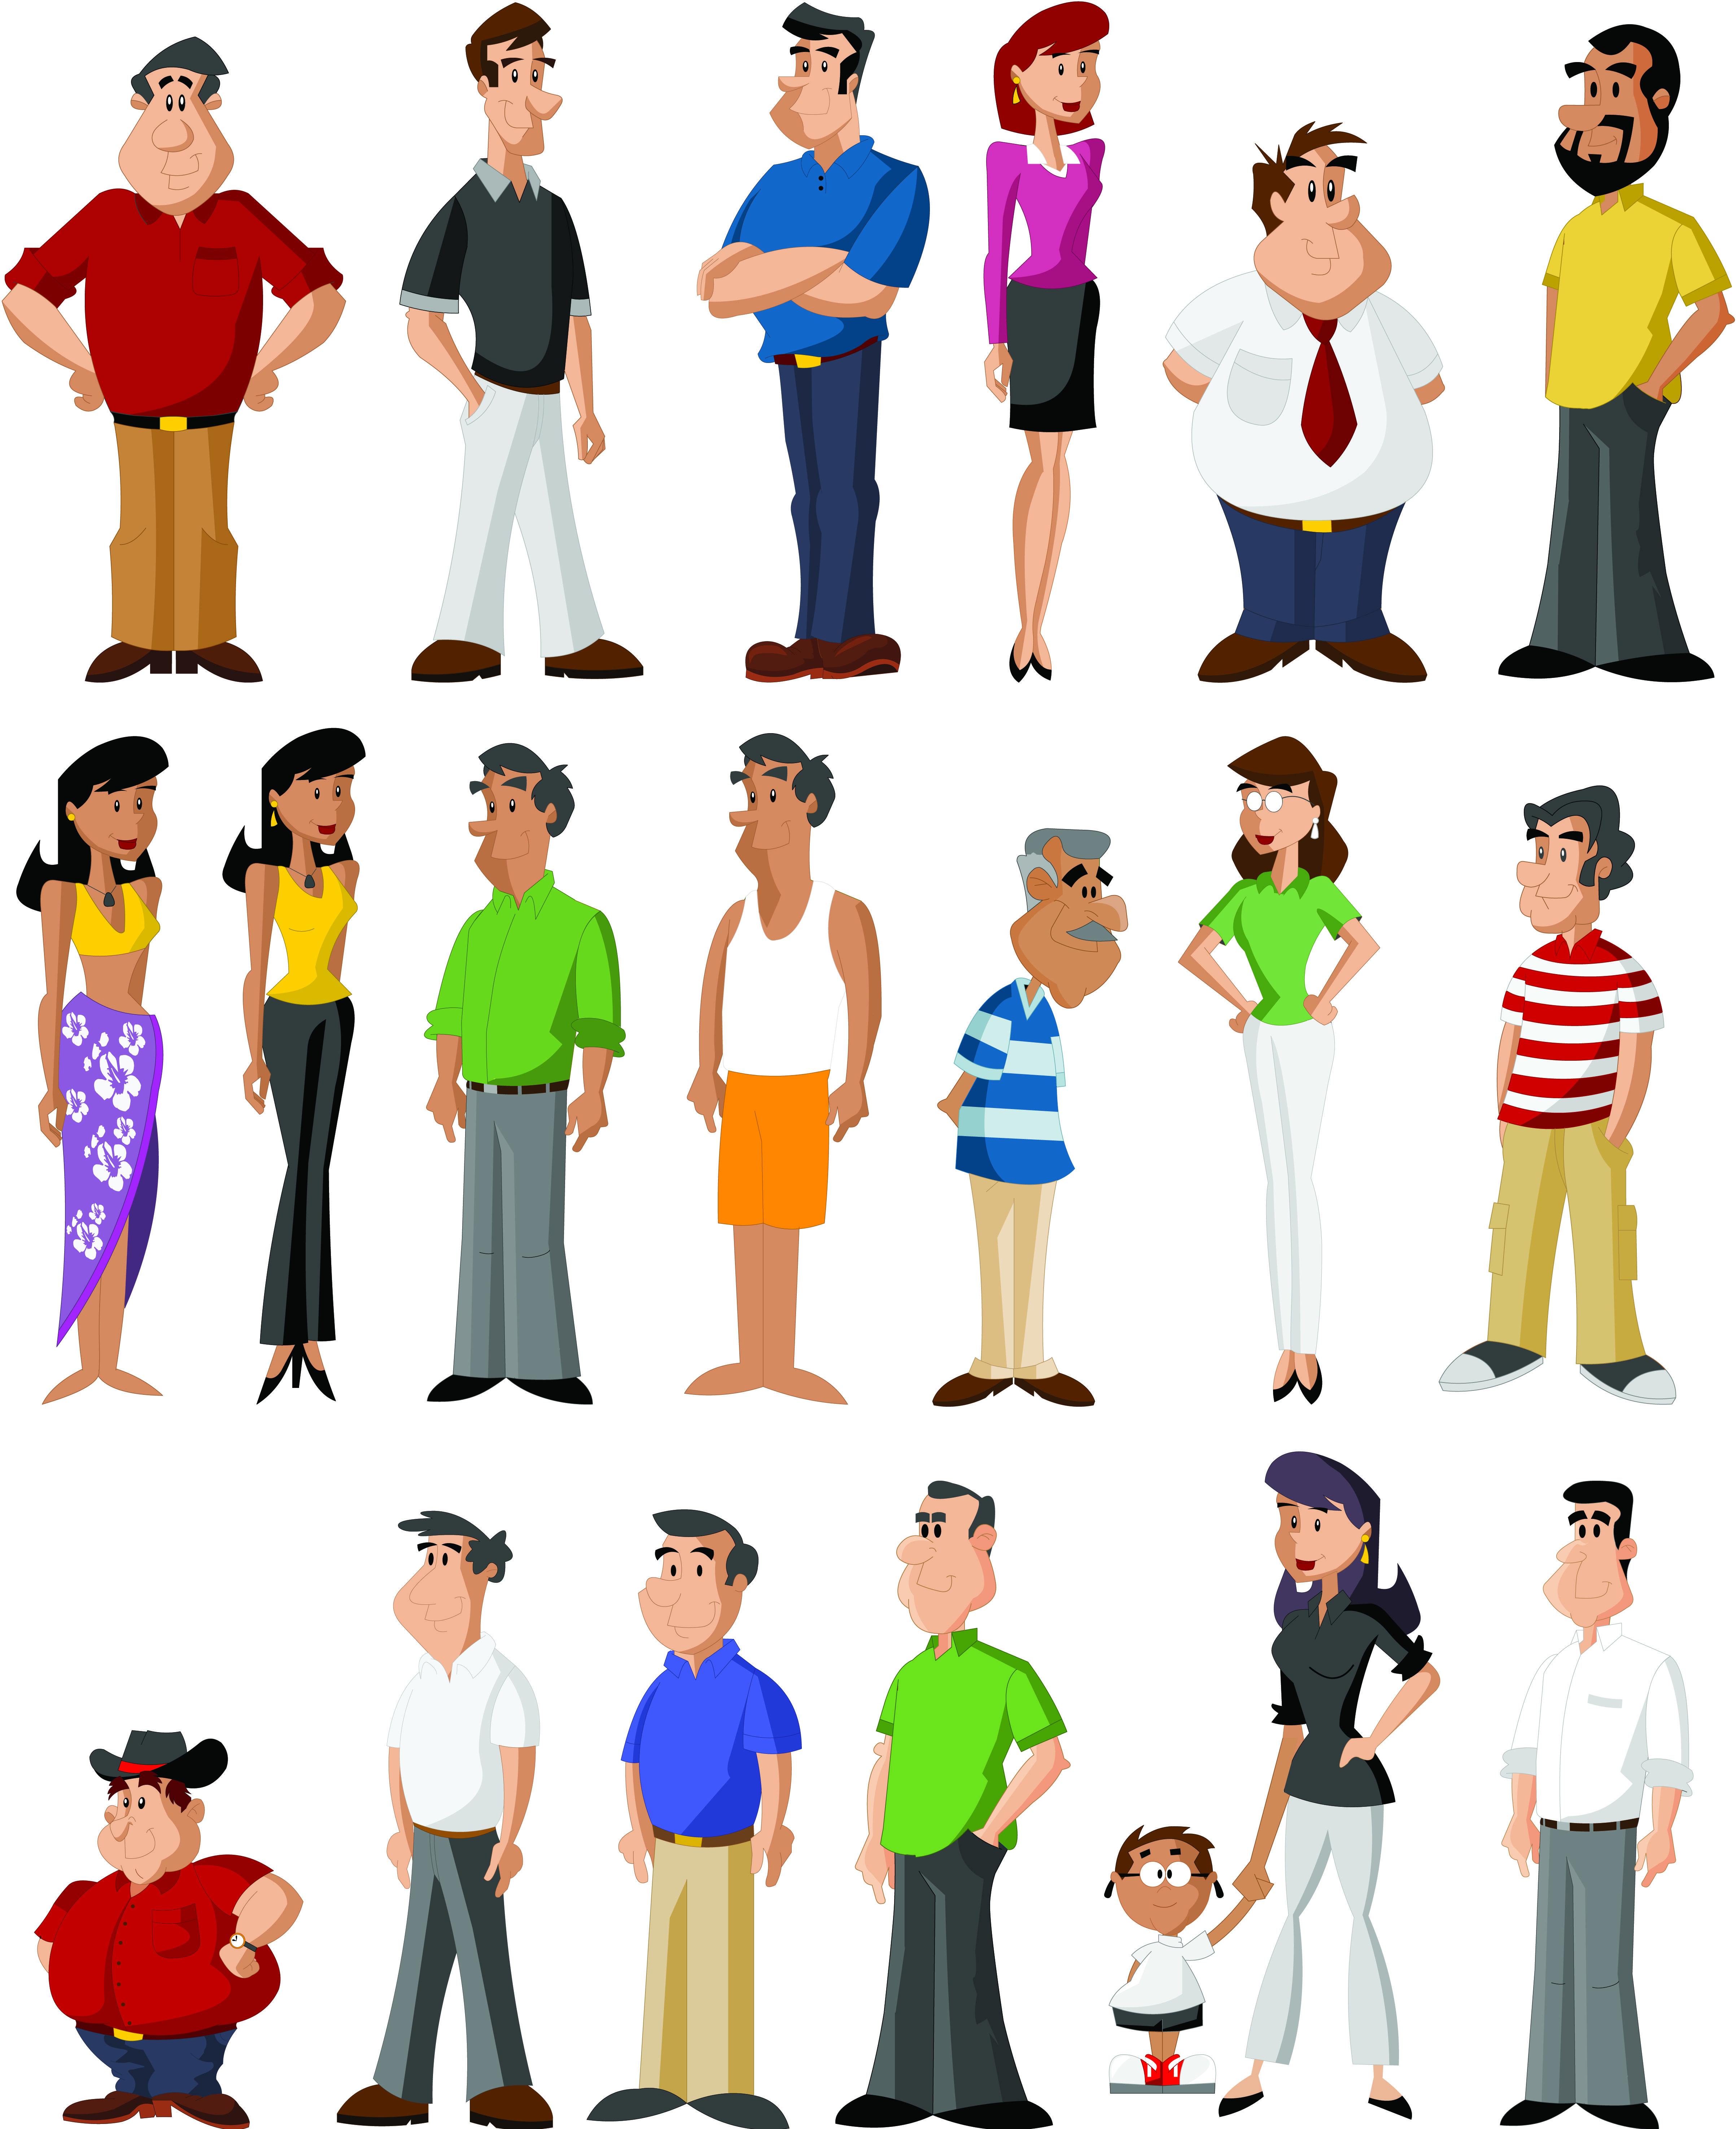 Character Design Free : Free vector all kinds of cartoon characters cool